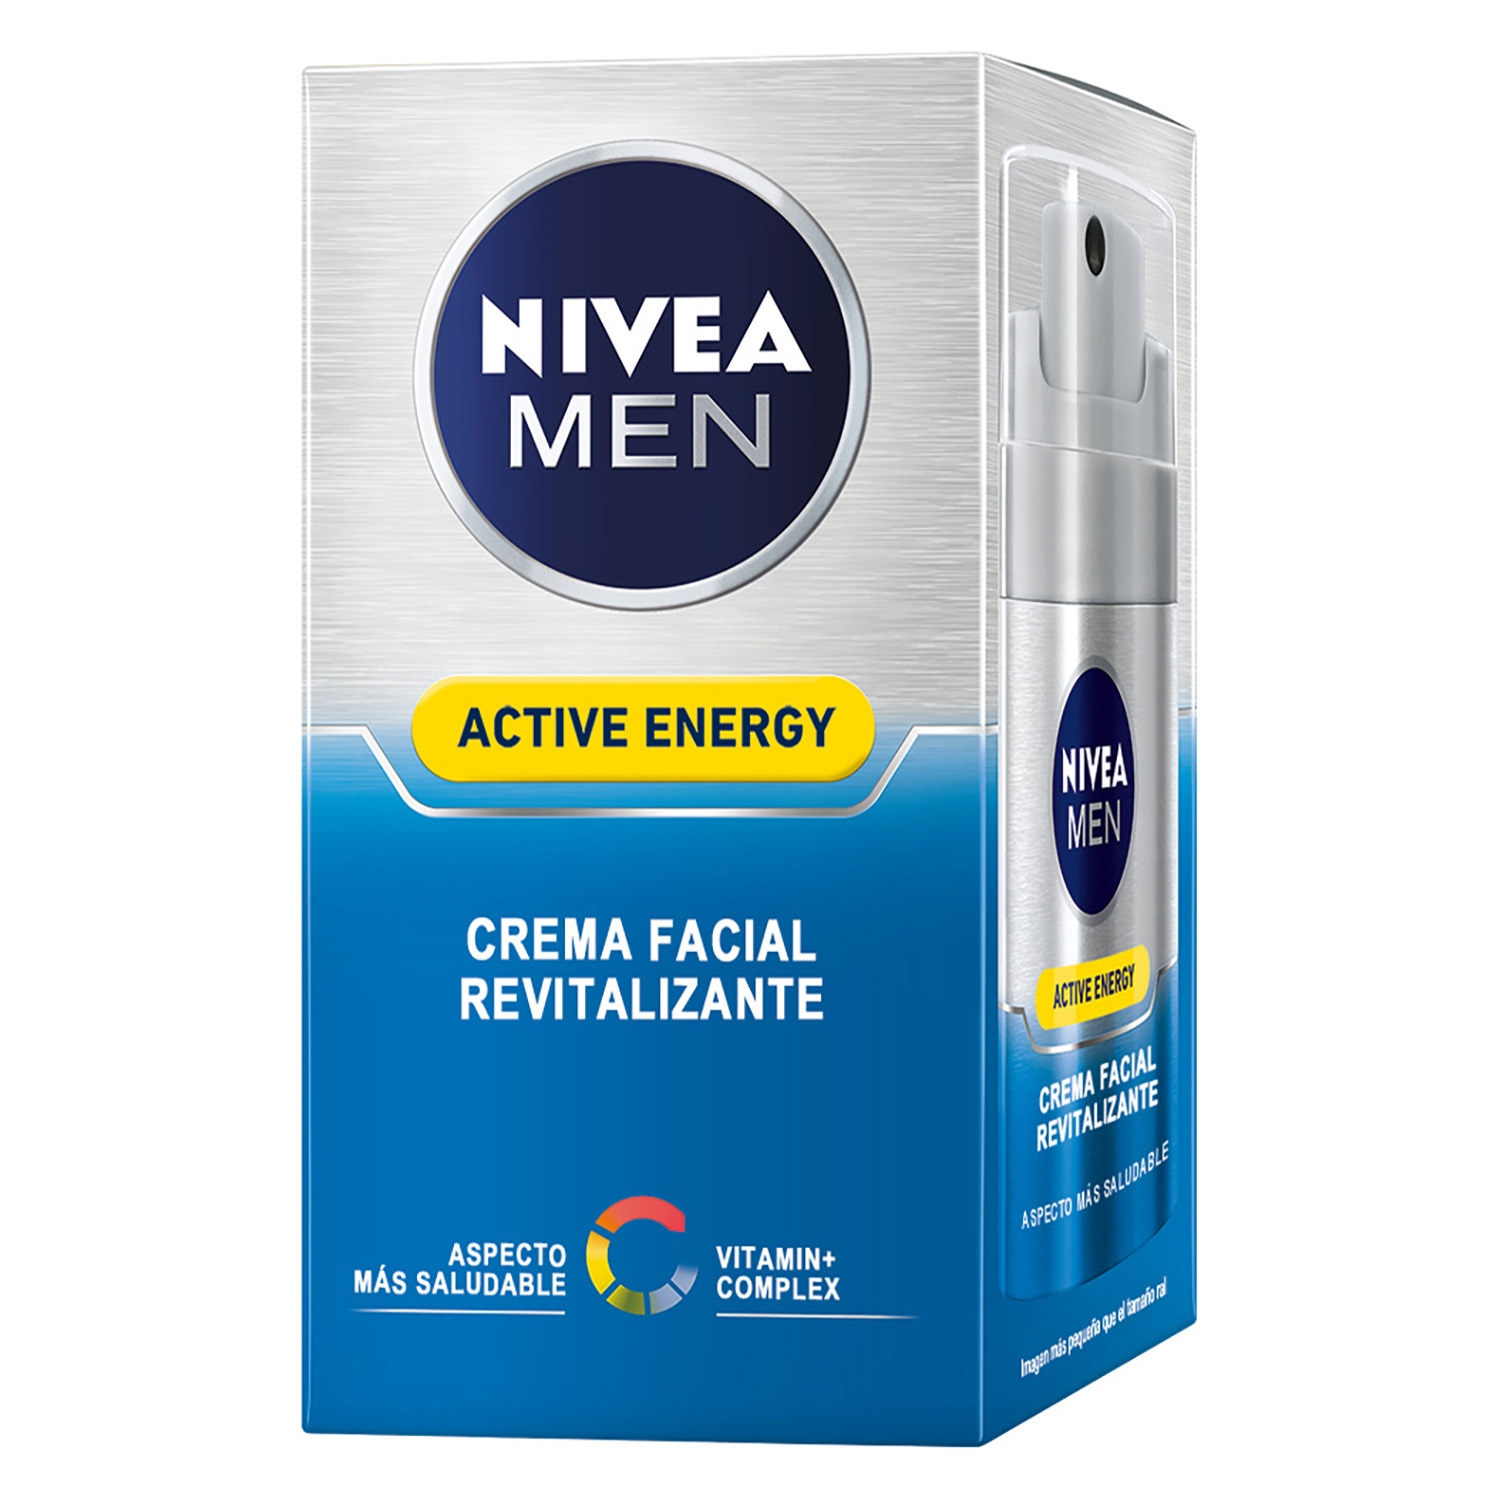 Active Energy Crema Facial Revitalizante